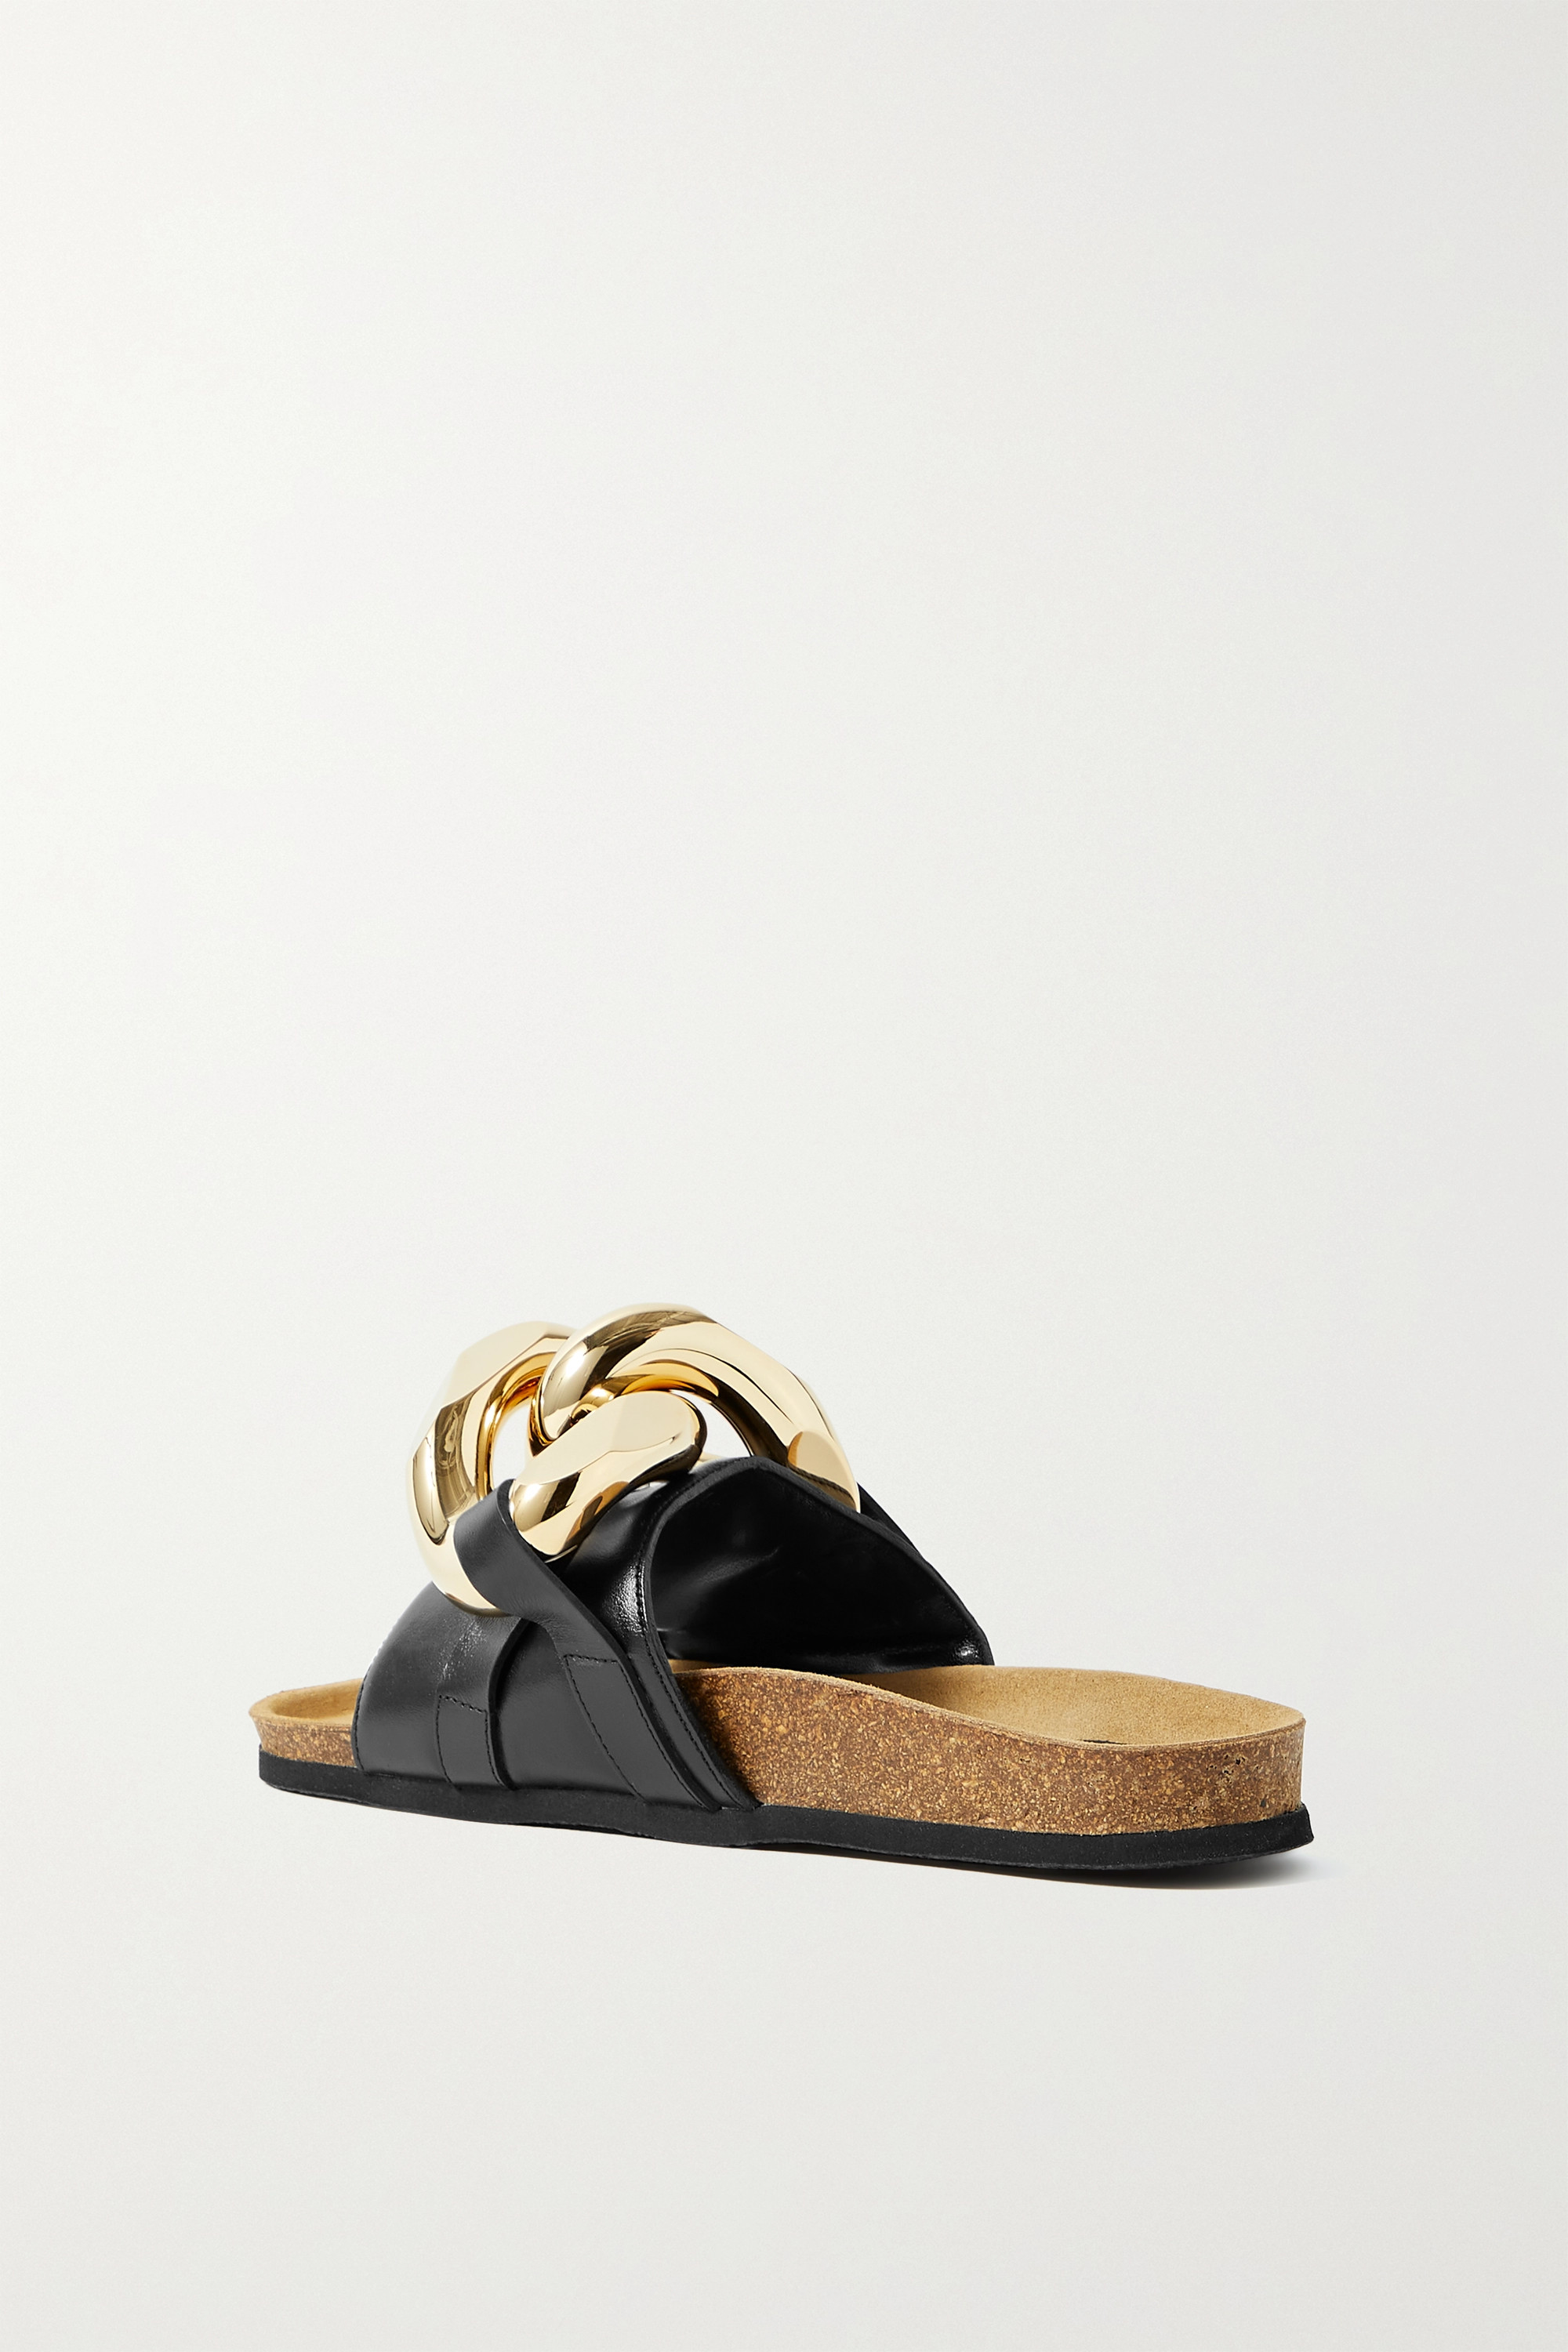 JW ANDERSON Chain-embellished leather slides